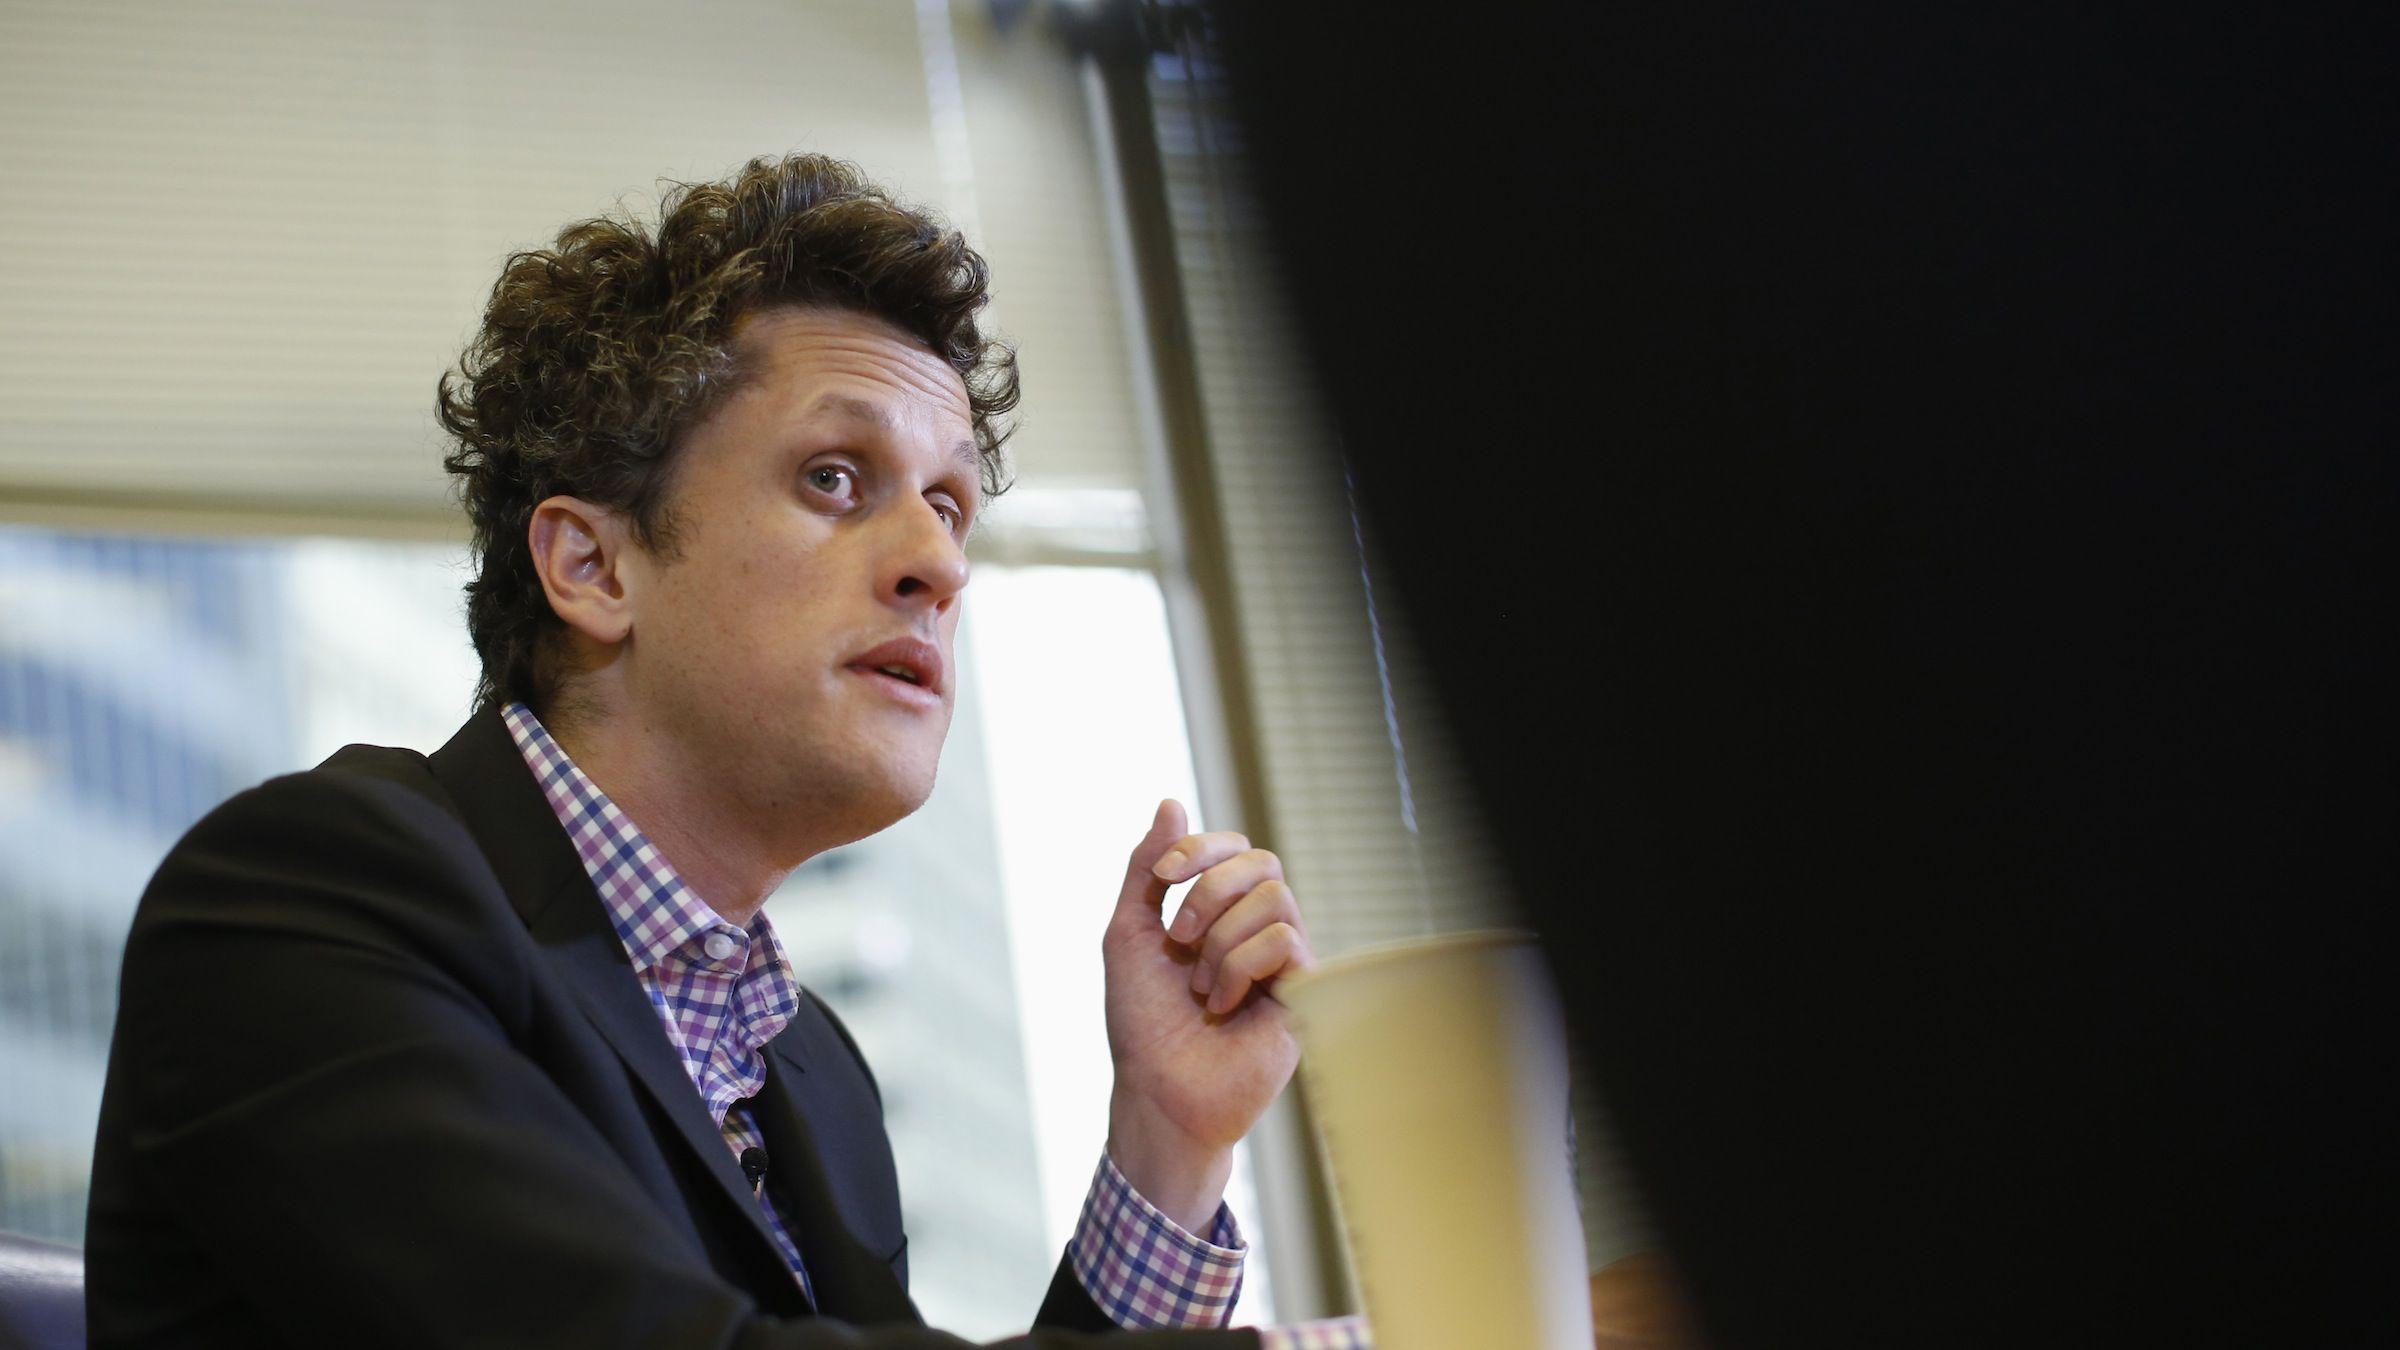 Box Inc. CEO Aaron Levie